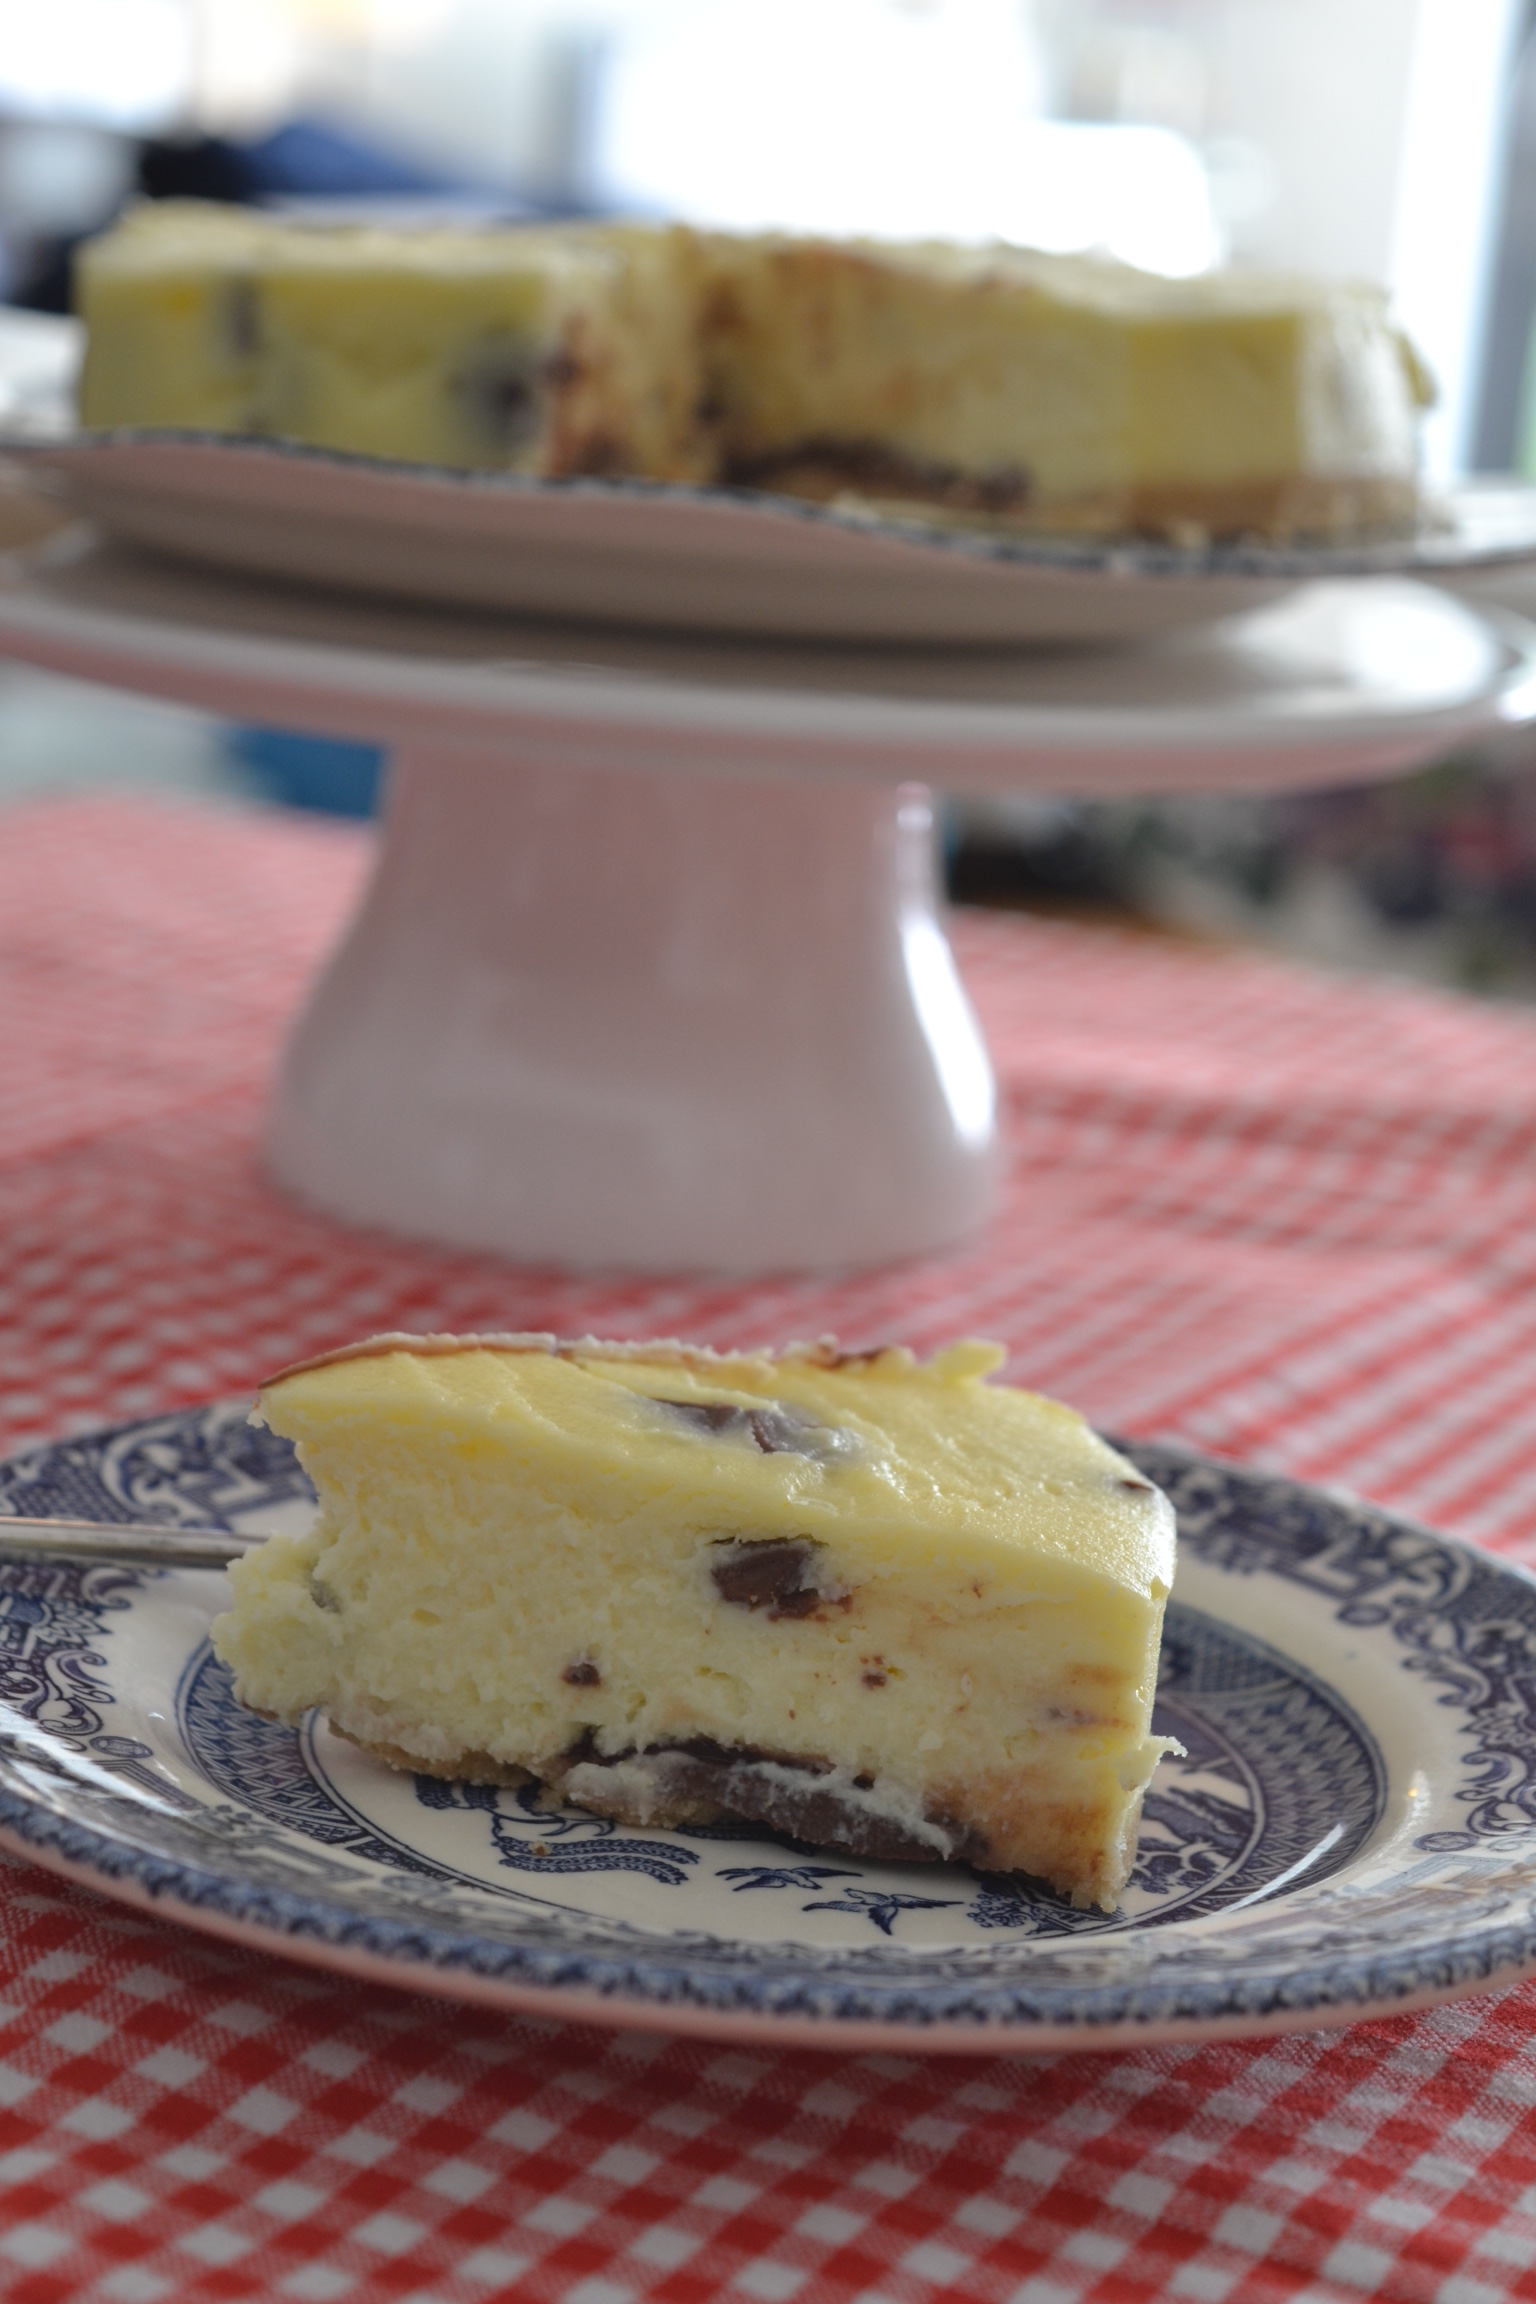 Chocolate Chip Cheesecake With Dr Oetker Whyiamnotskinny